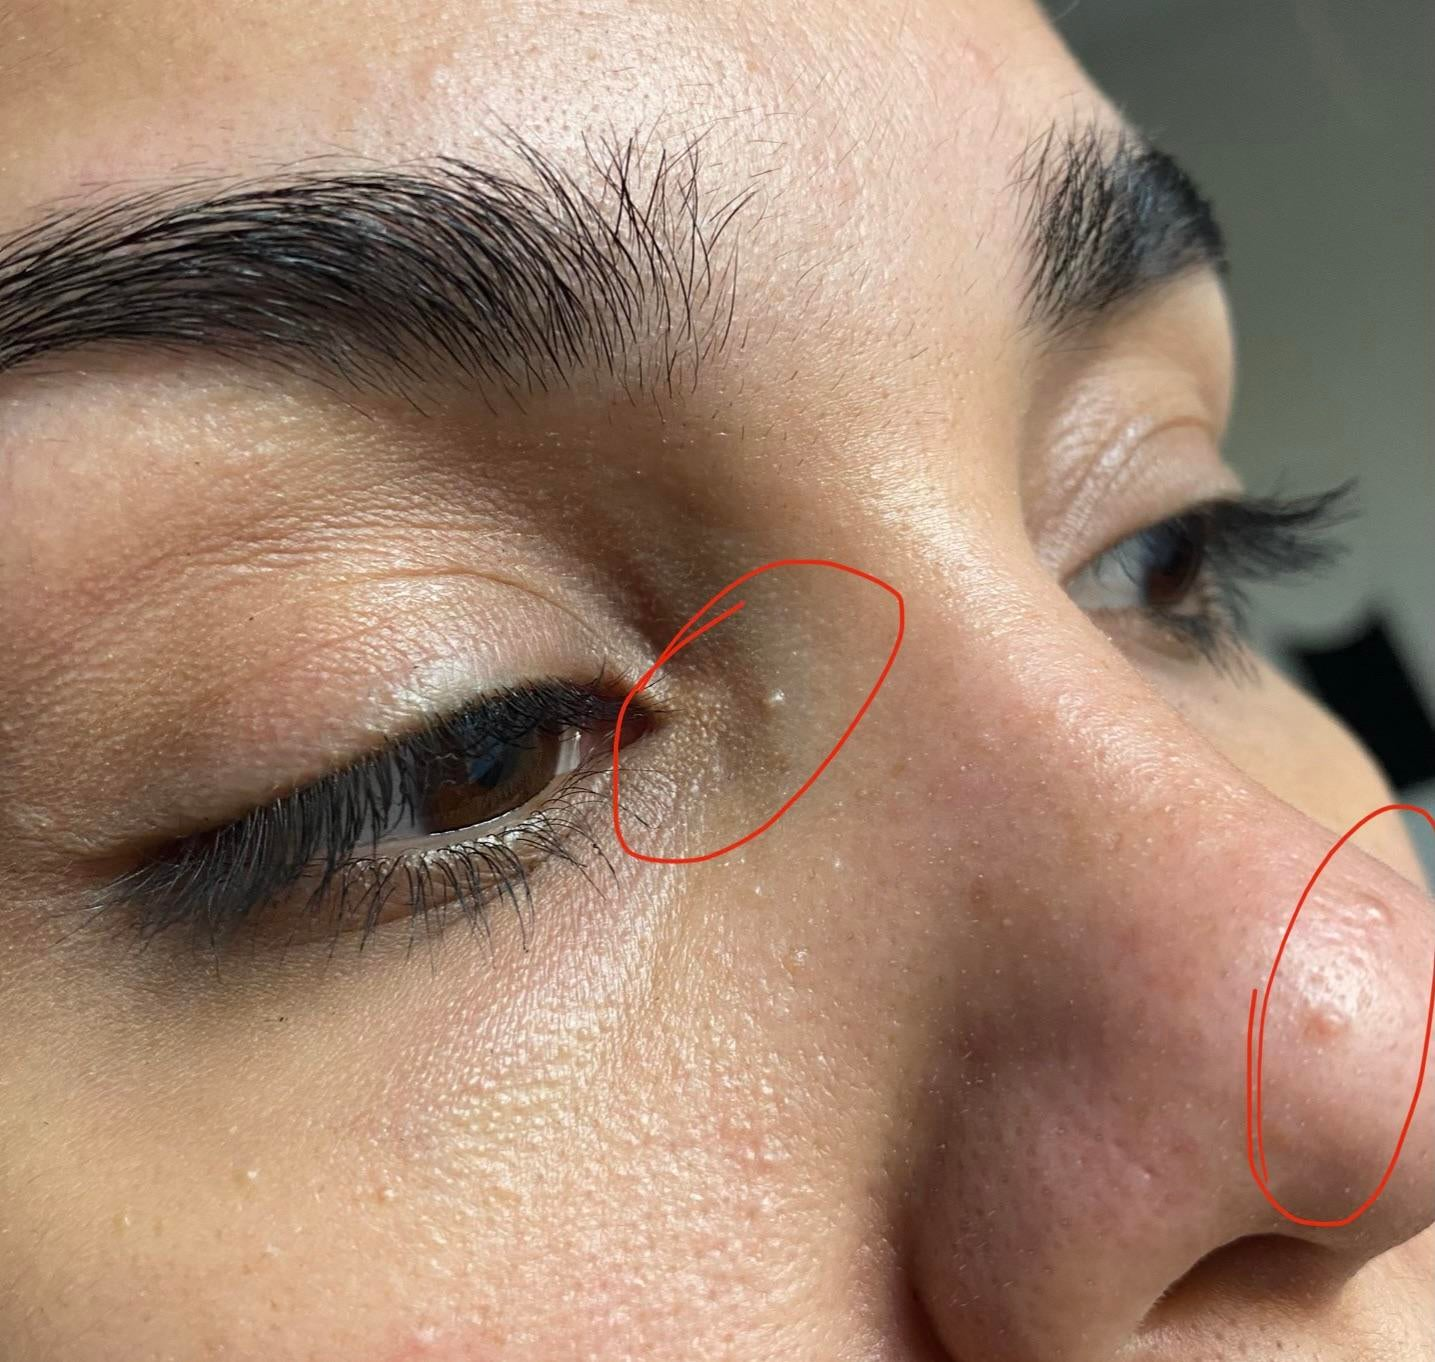 [Skin Concerns] Is this milia? I've had the two on my nose for most of my life but recently noticed the one by my eye. Can they be removed?